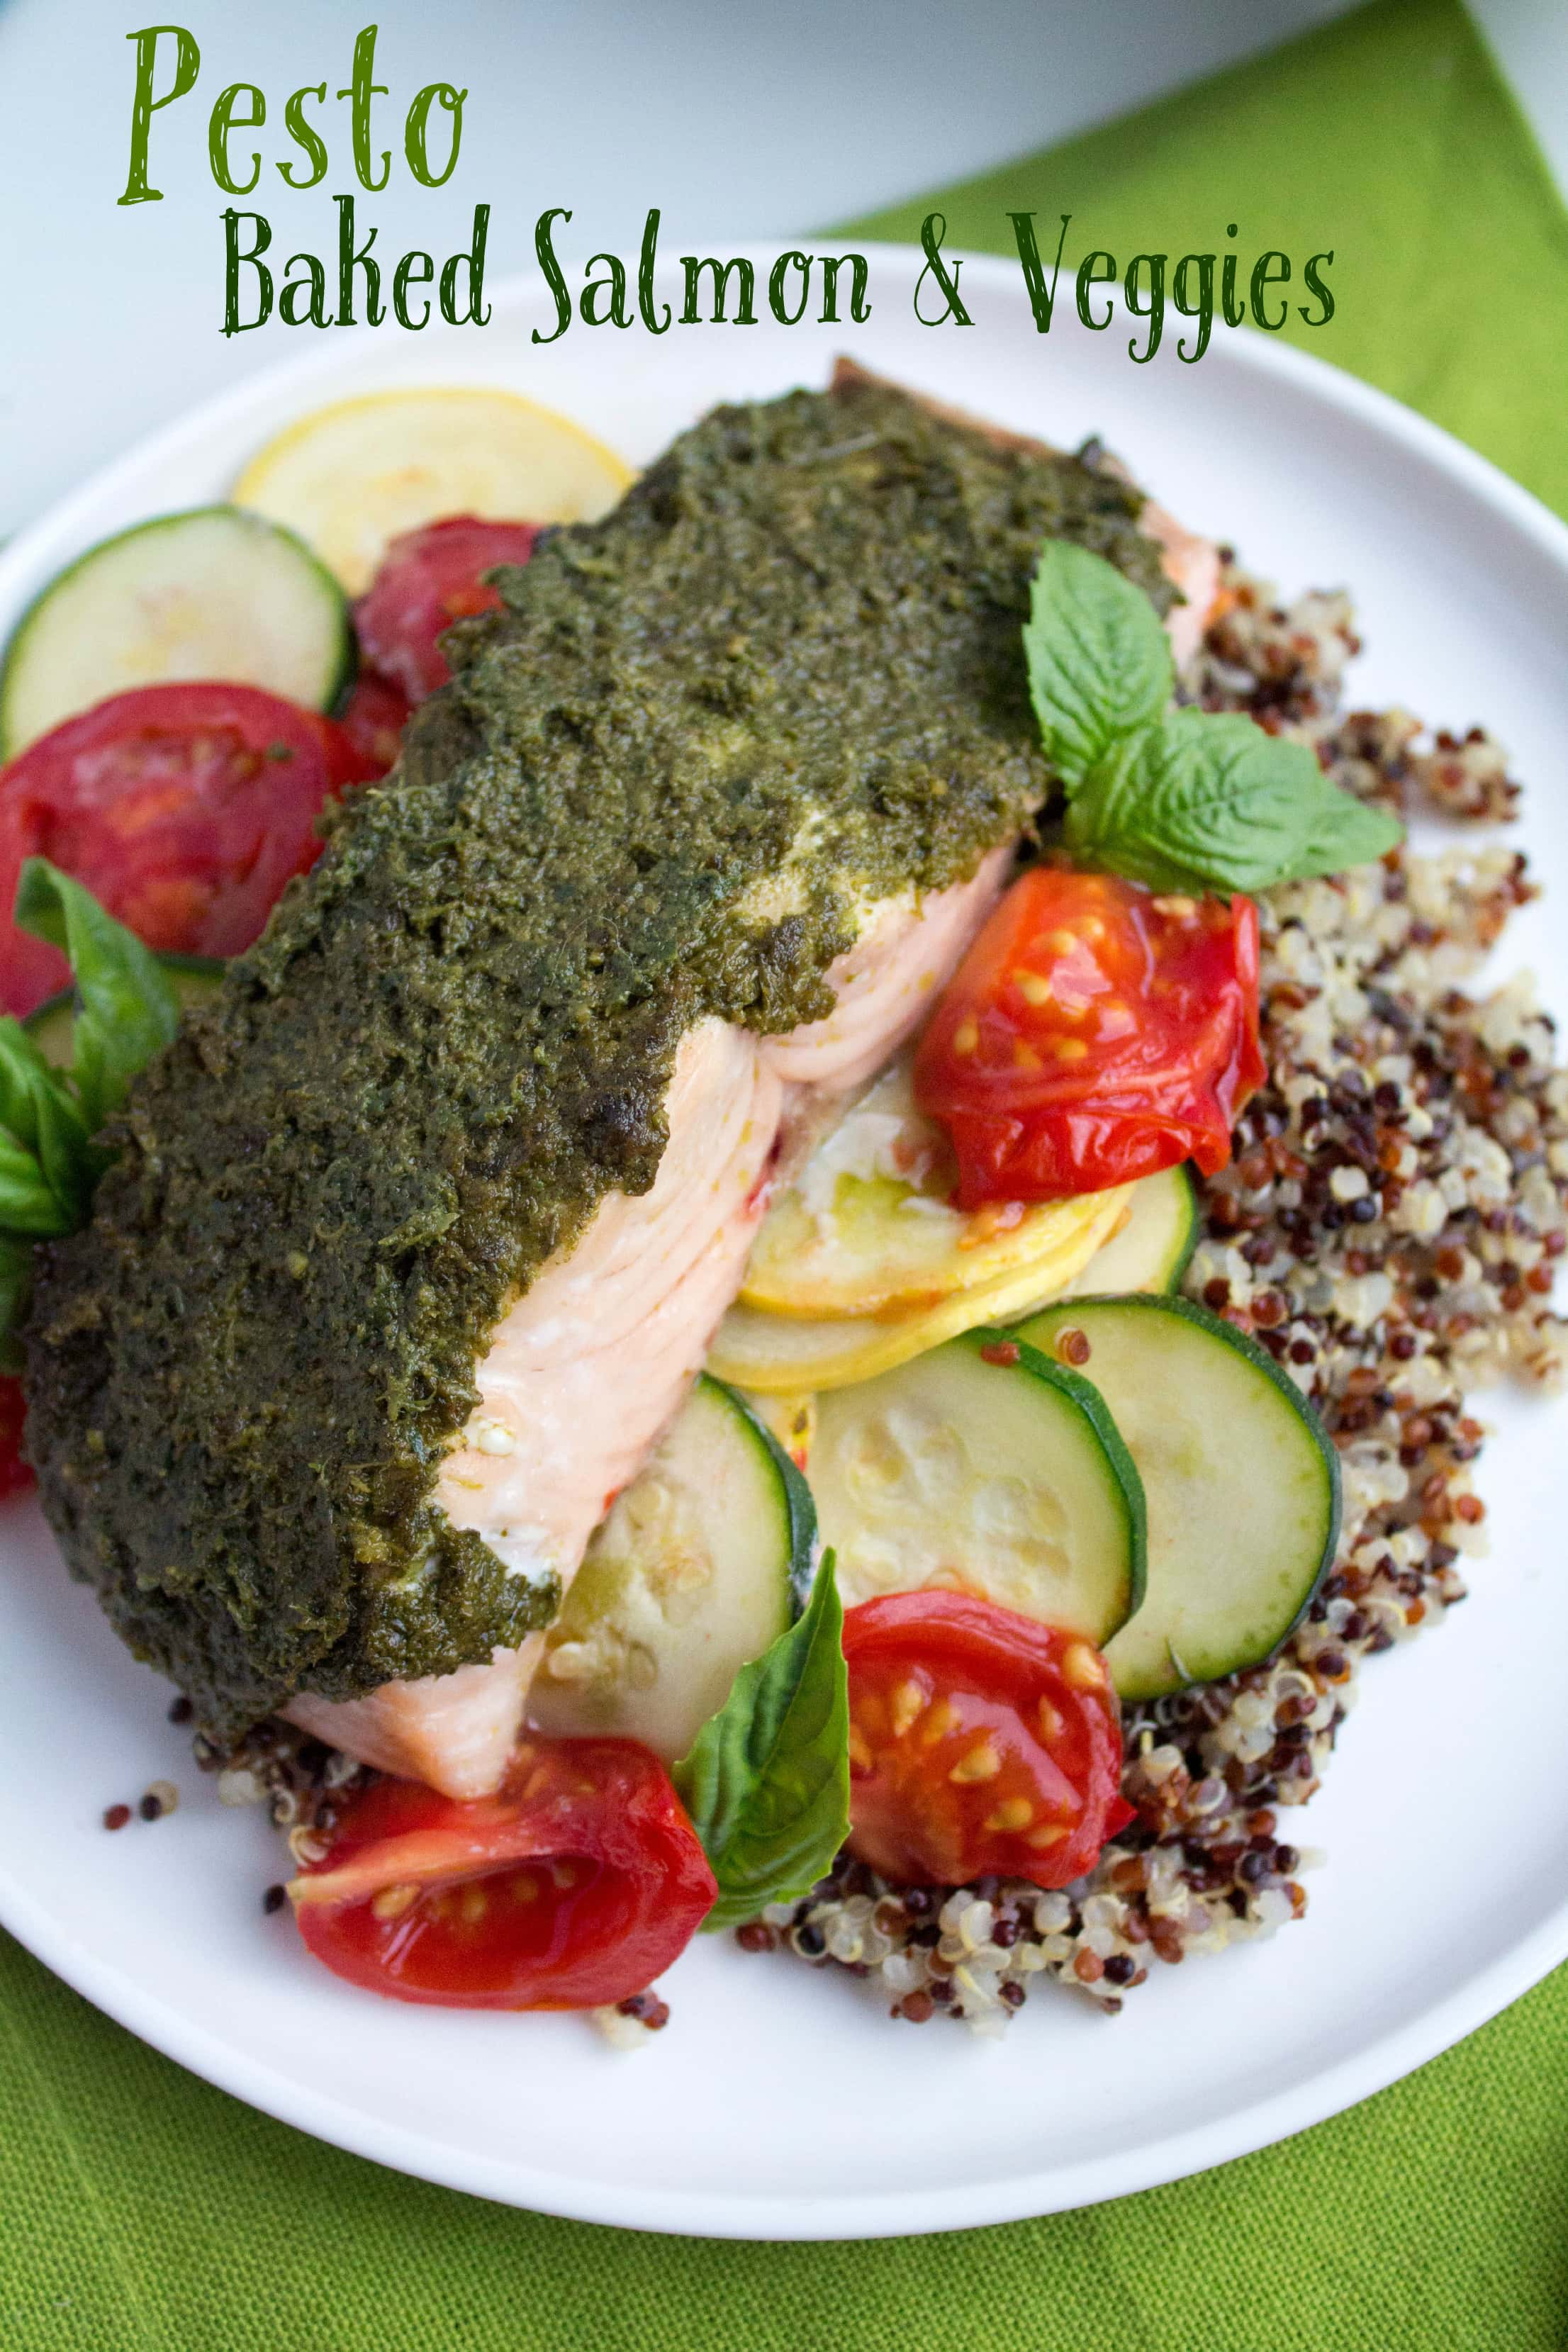 Pesto Baked Salmon With Veggies